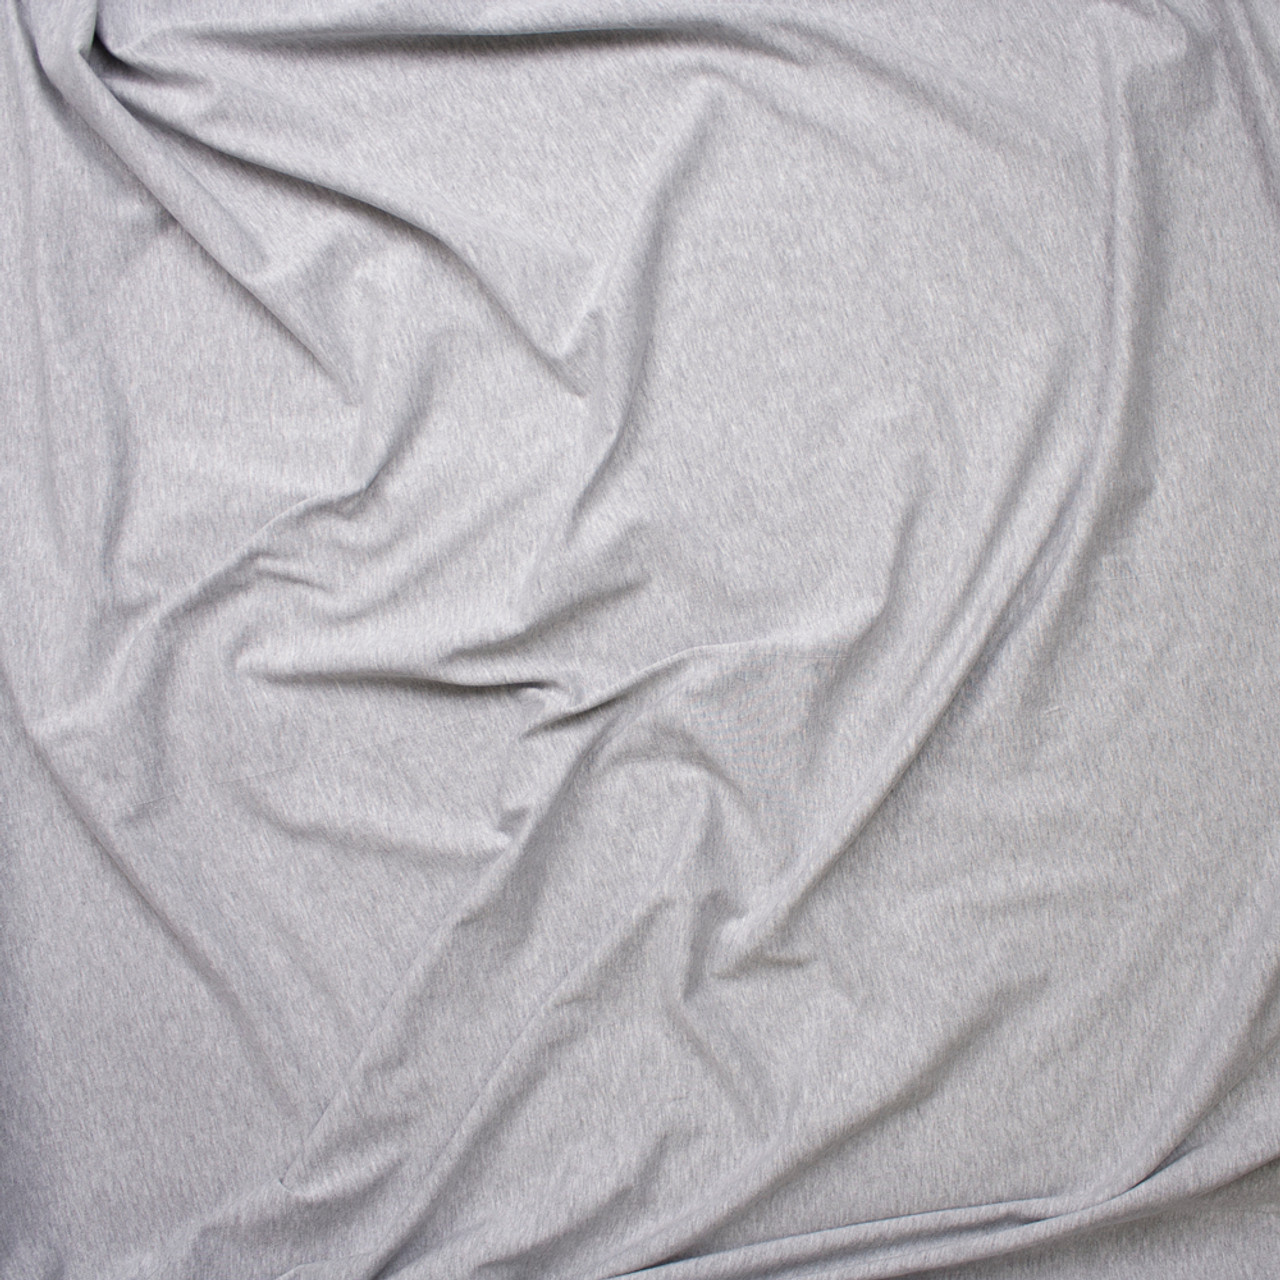 ff68560eb12 ... Heather Grey Light Midweight Stretch Cotton Jersey Knit Fabric By The  Yard - Wide shot